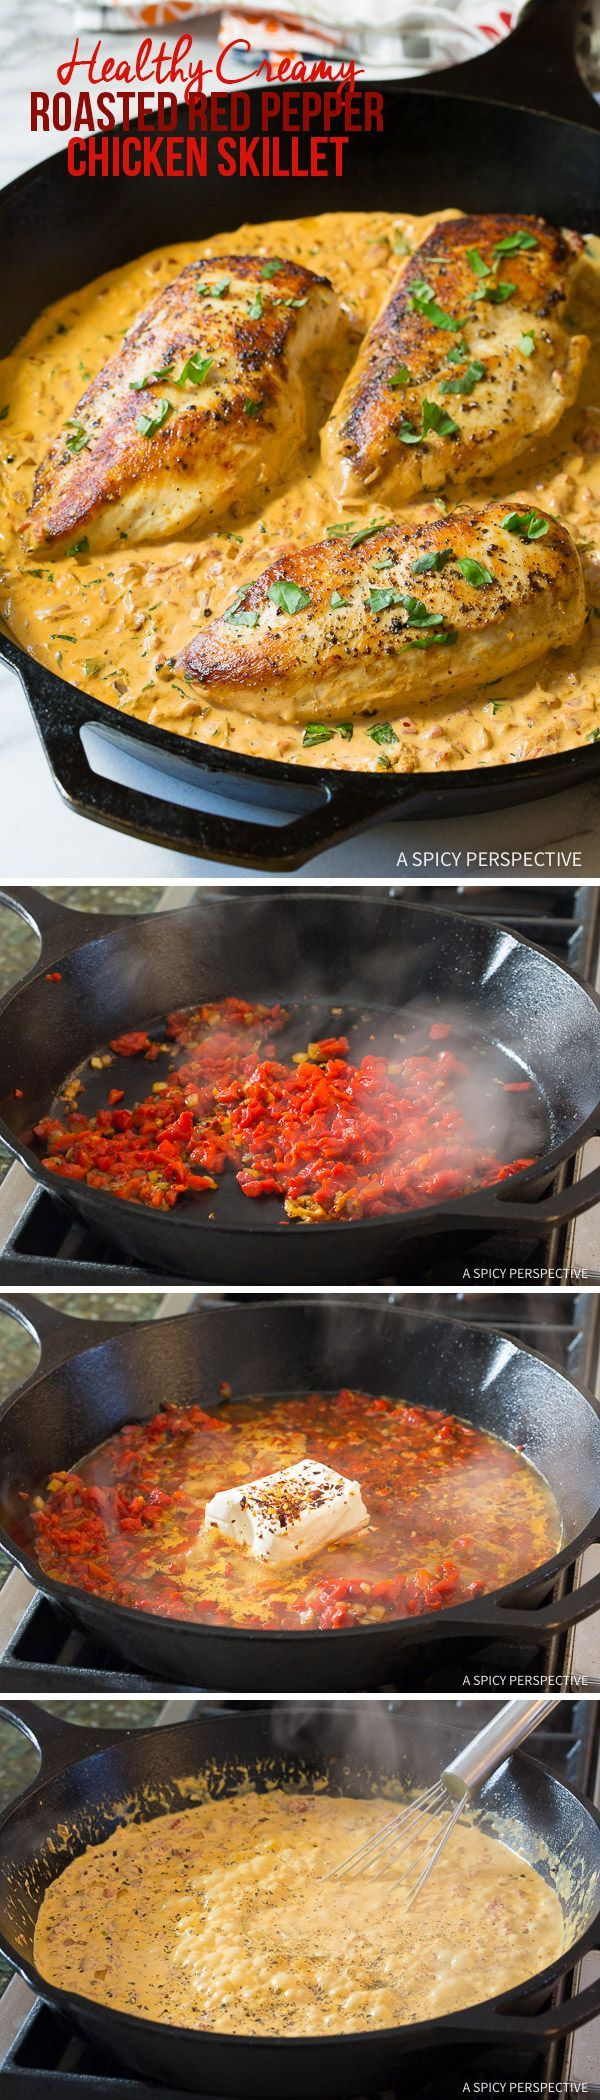 Easy, Healthy Creamy Chicken Roasted in a Skillet with Creamy Rep Pepper sauce. From ASpicyPerspective.com.